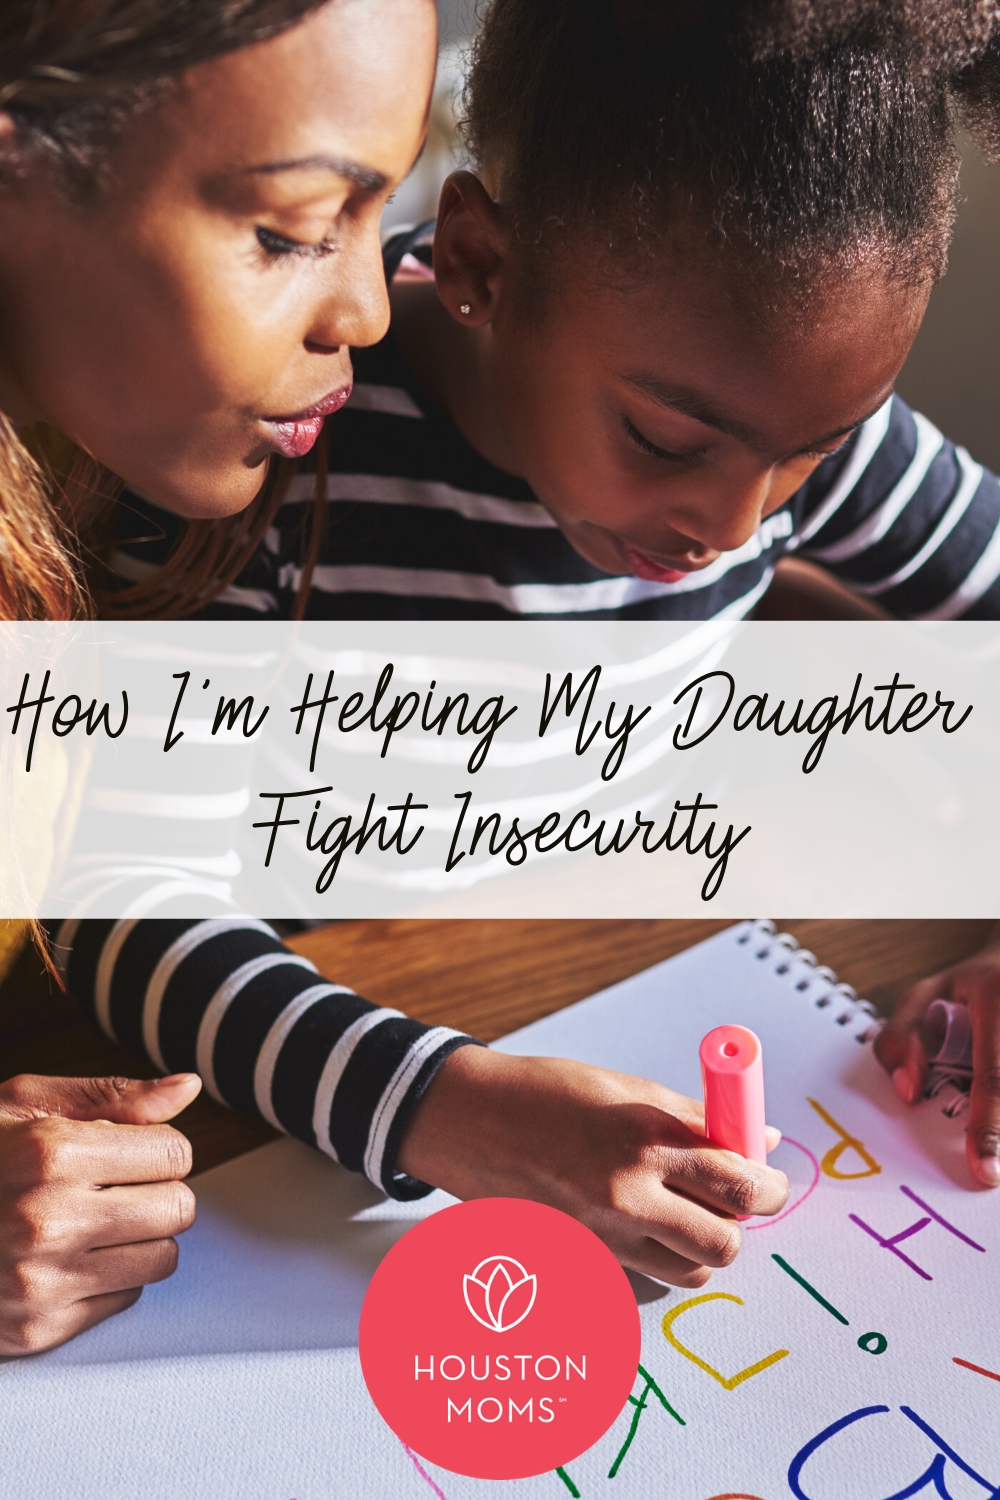 """Houston Moms """"How I'm Helping My Daughter Fight Insecurity"""" #houstonmoms #houstonmomsblog #momsaroundhouston"""